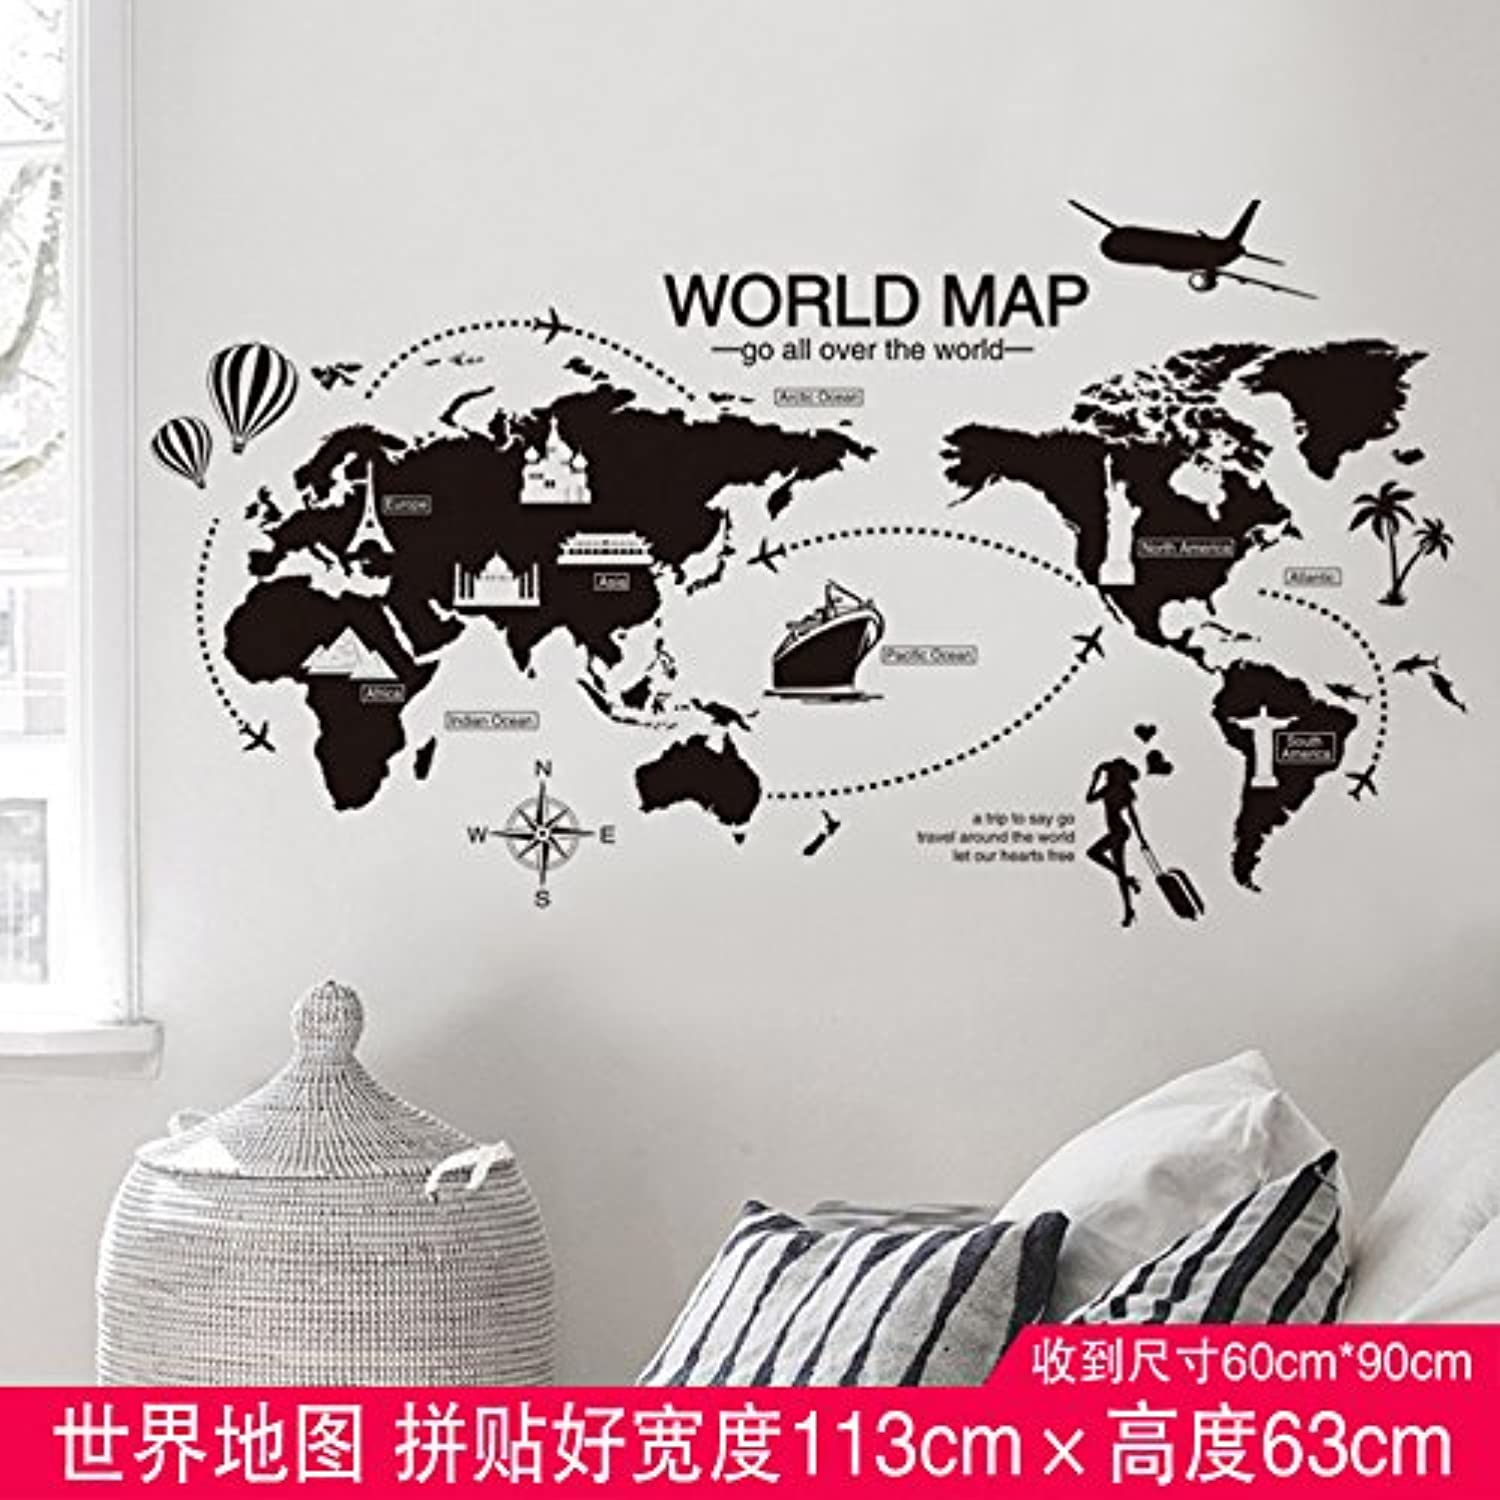 Znzbzt Self Adhesive Wall Sticker Small Pieces of Flowers on The Wall in The Living Room Wall Posters, a map of The World, King